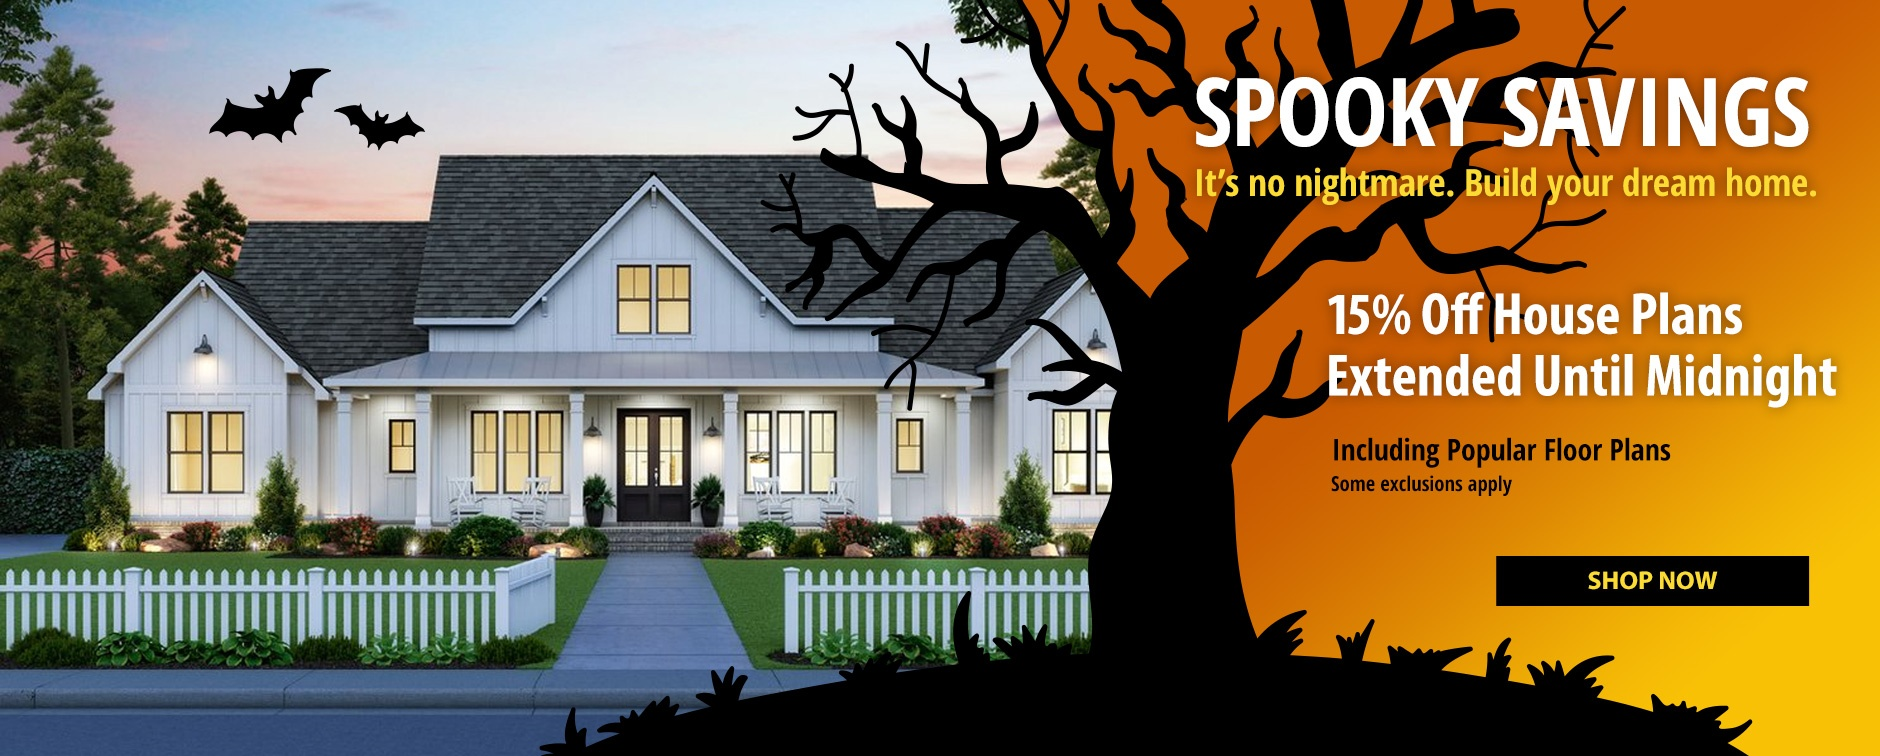 House Plan Sale 15% Off Extended Until Midnight